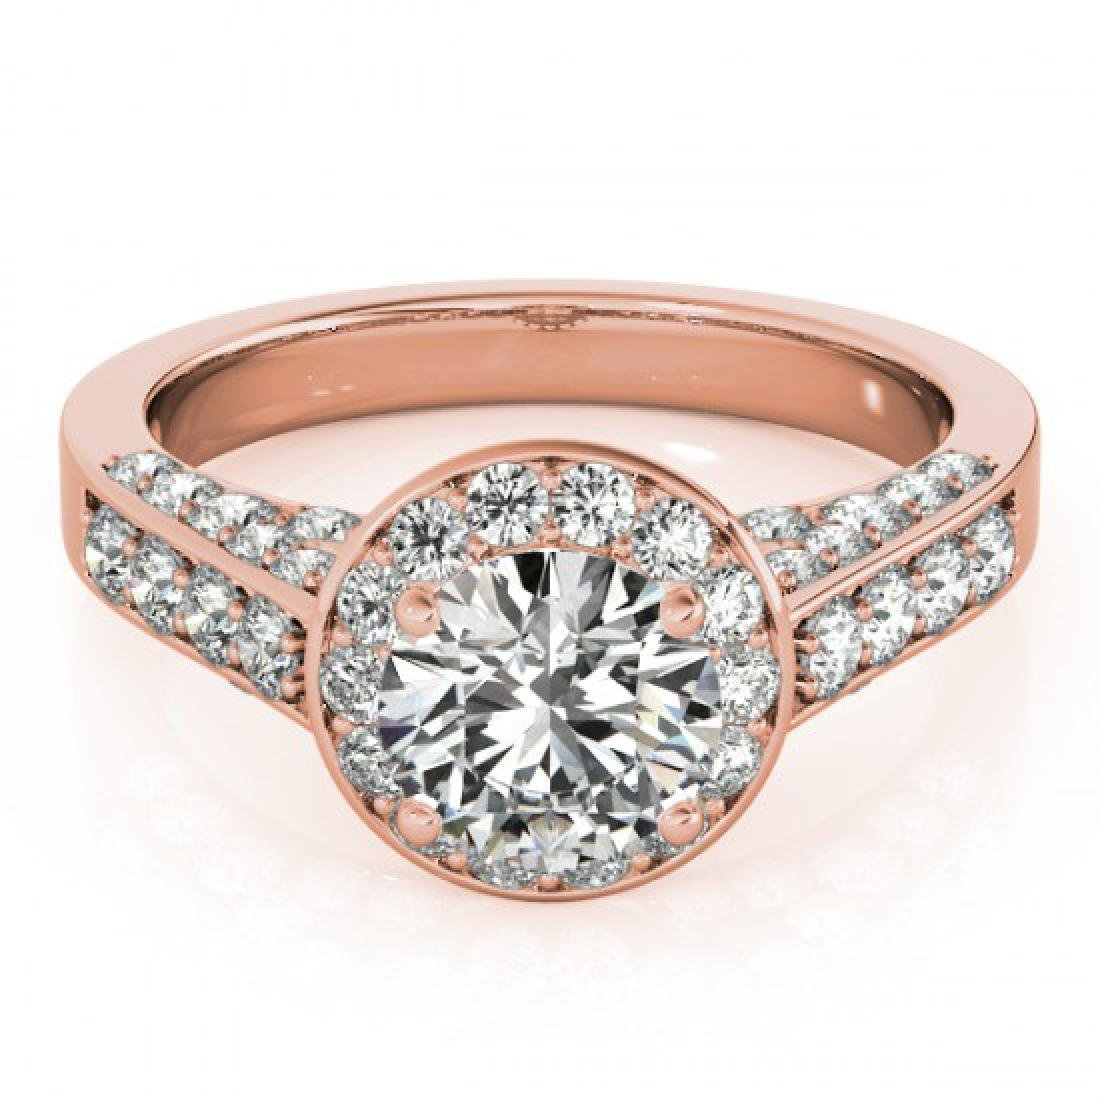 2.56 CTW Certified VS/SI Diamond Solitaire Halo Ring